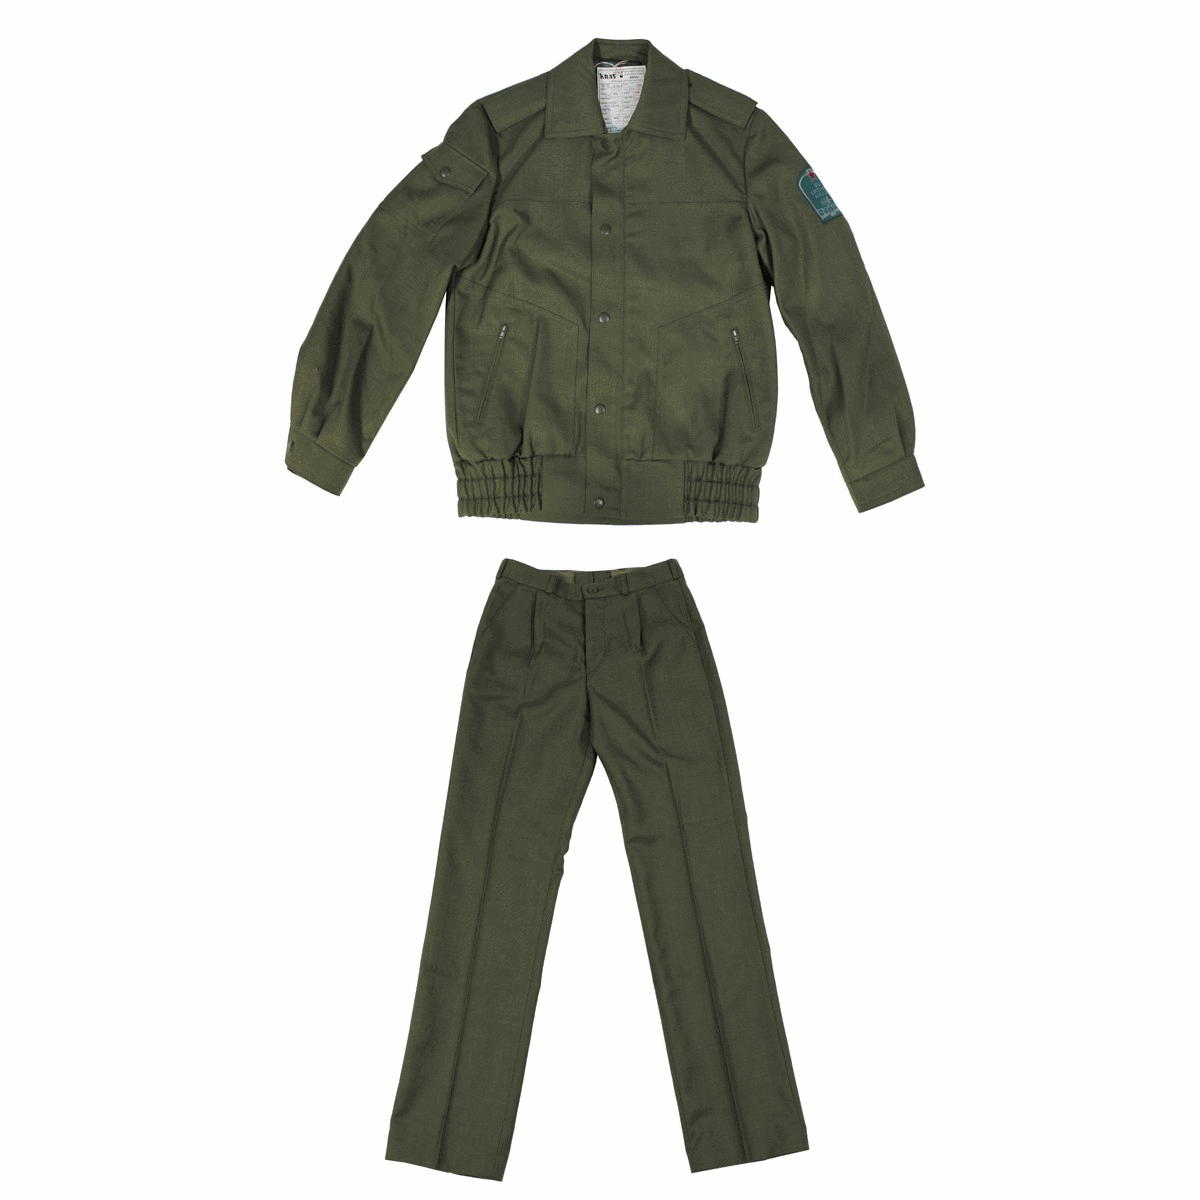 East european army surplus trousers and jacket